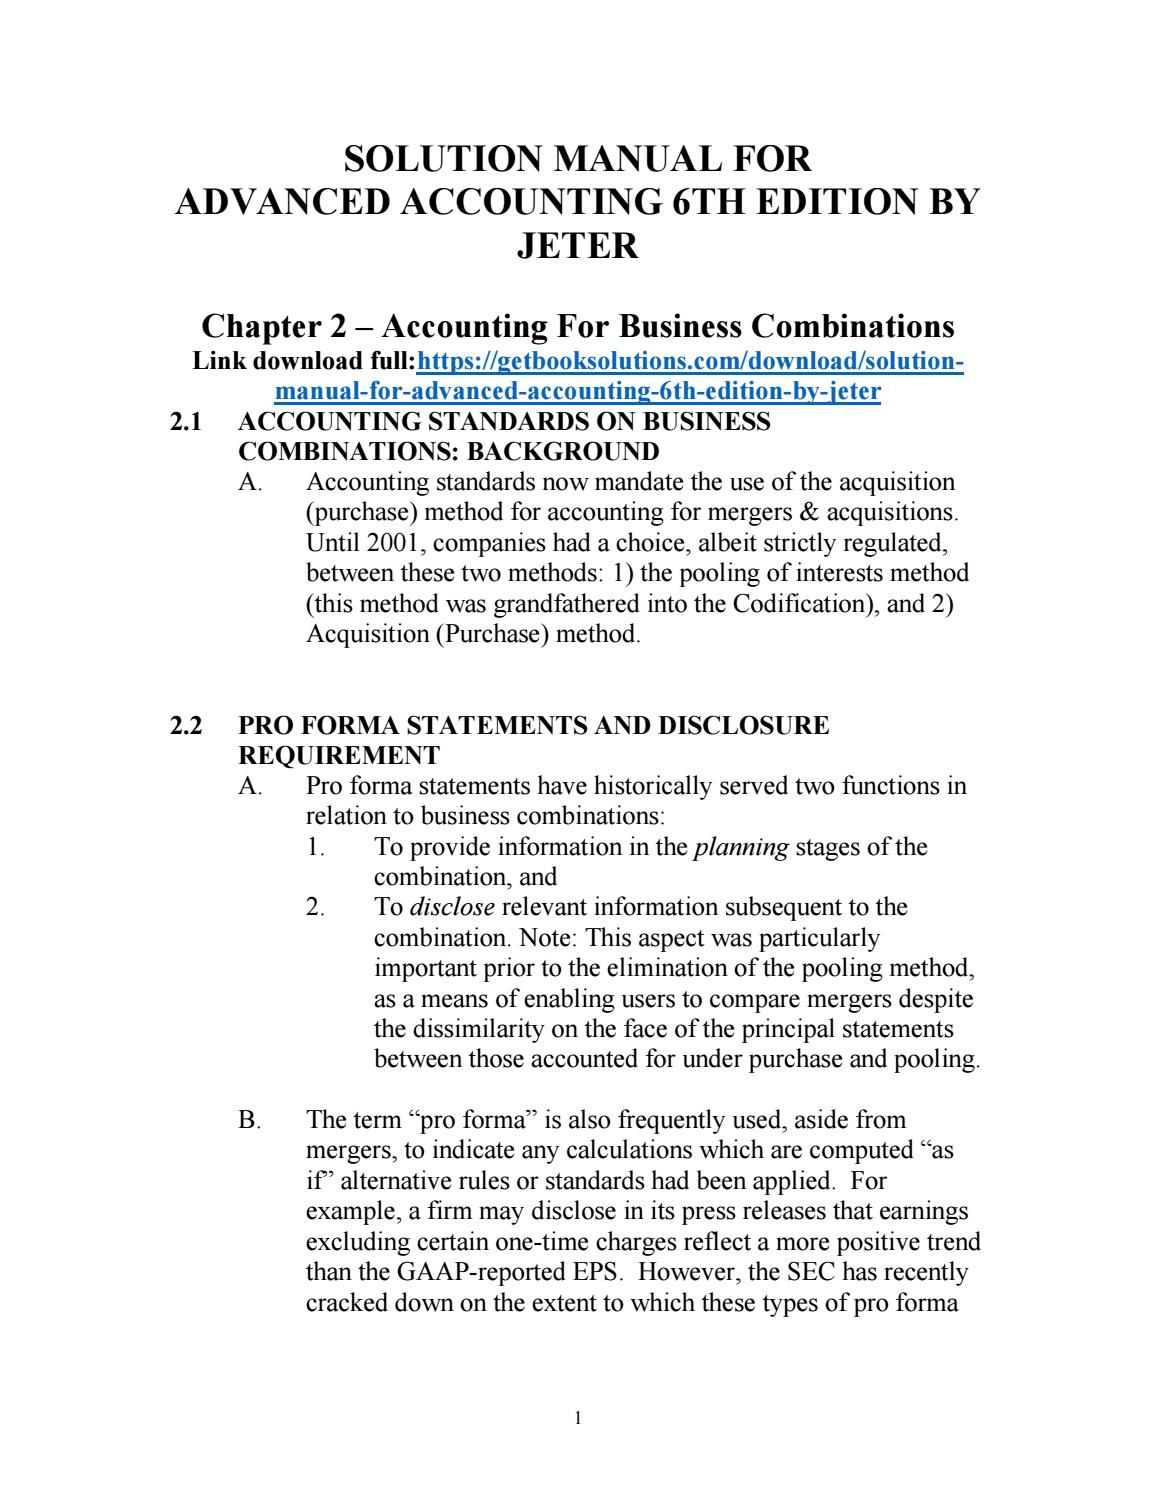 Solution manual for advanced accounting 6th edition by jeter | solution  manual | Pinterest